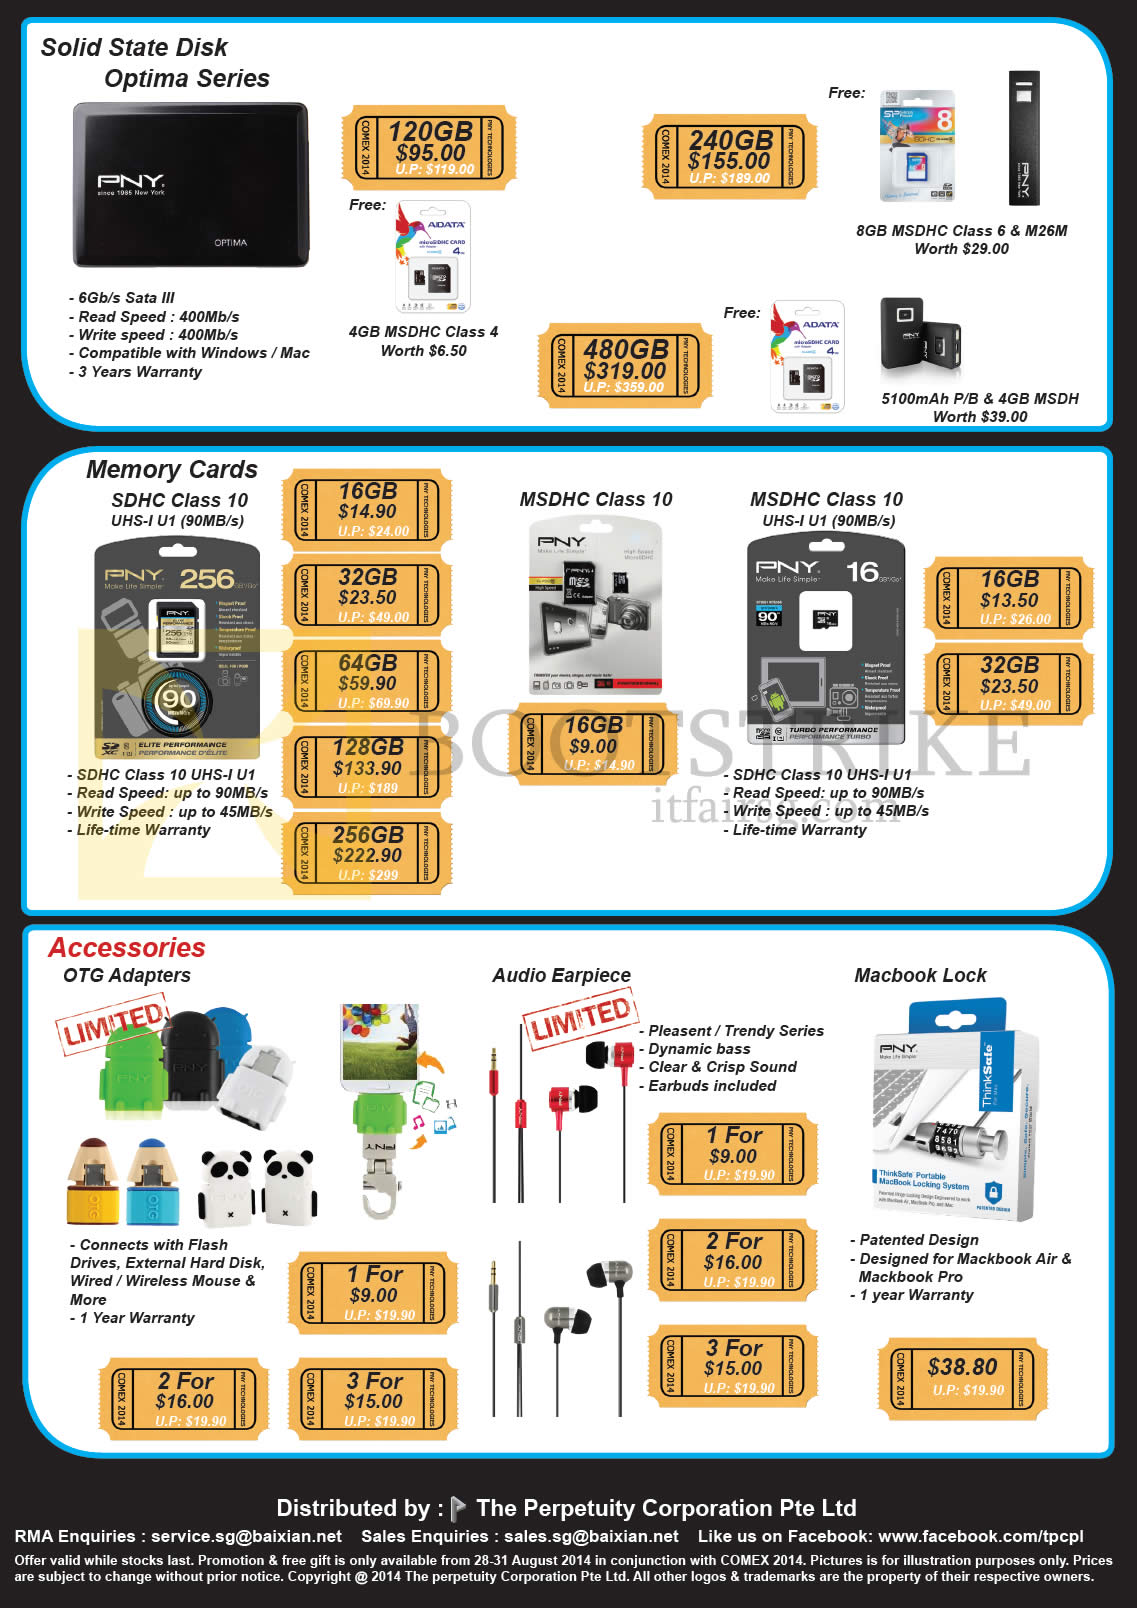 COMEX 2014 price list image brochure of The Perpetuity PNY Memory Cards SDHC, Solid State Disks SSD, OTG Adapters, Earpiece